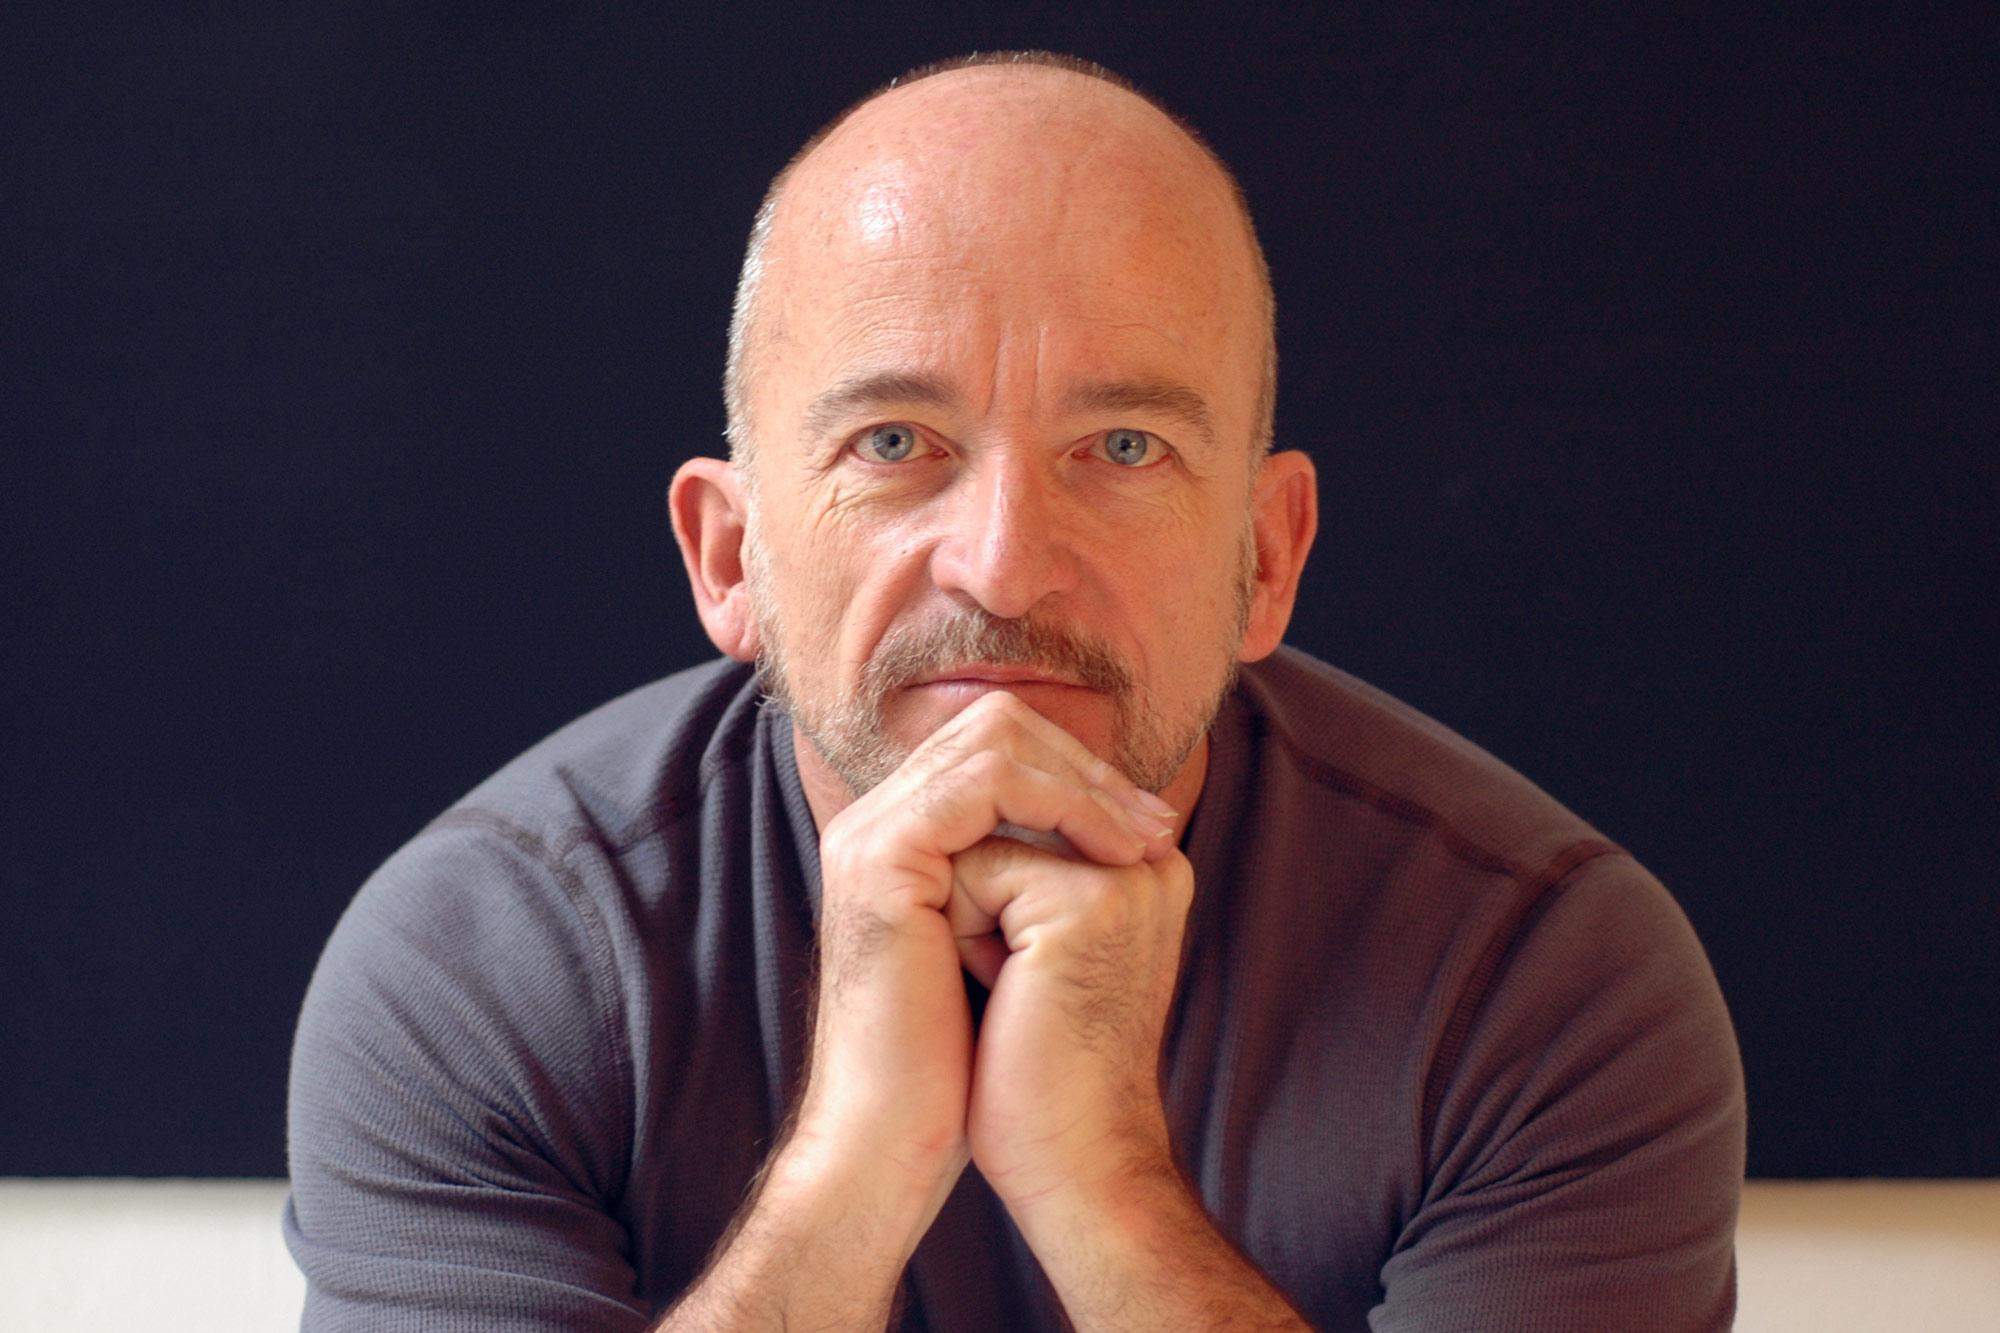 Award-winning writer Mark Doty has published a dozen collections of poetry and five works of nonfiction, including three memoirs. (Photo by Starr Black)